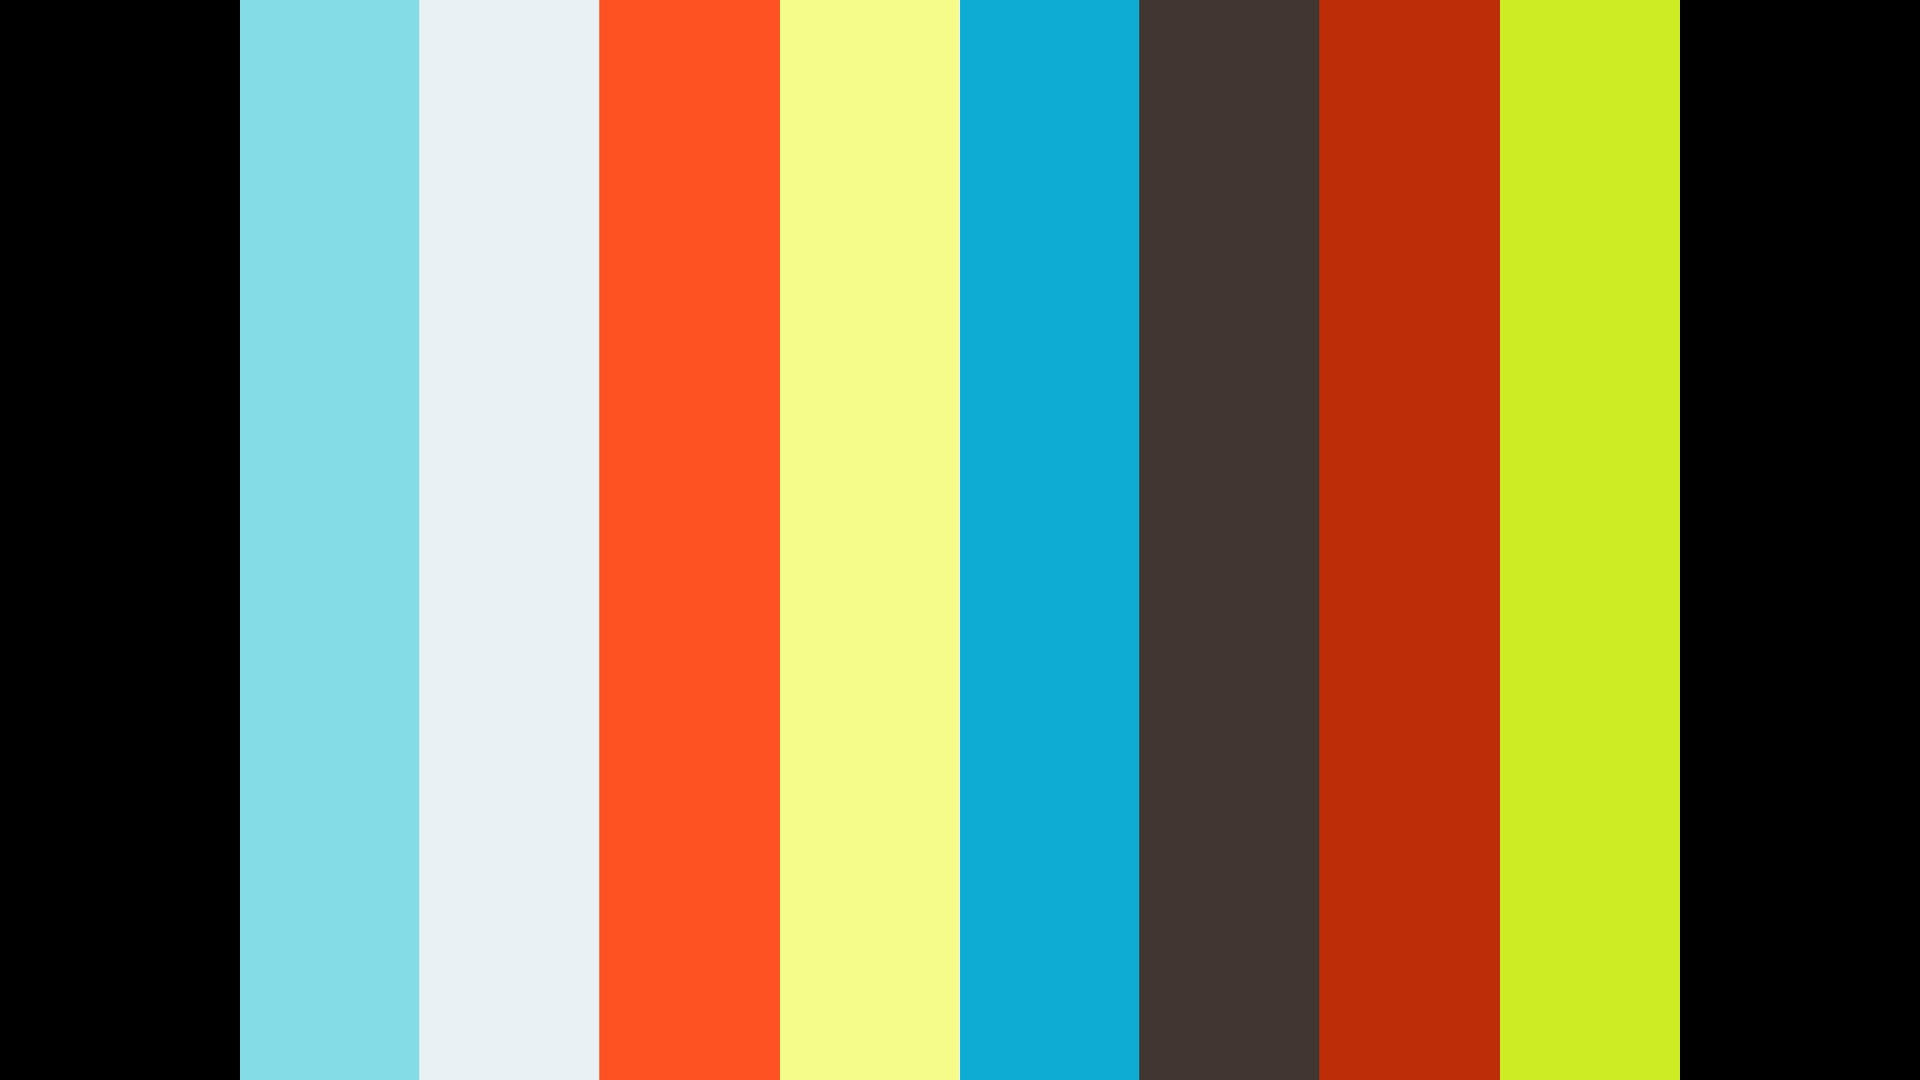 Former Queen of Iran's Art Collection